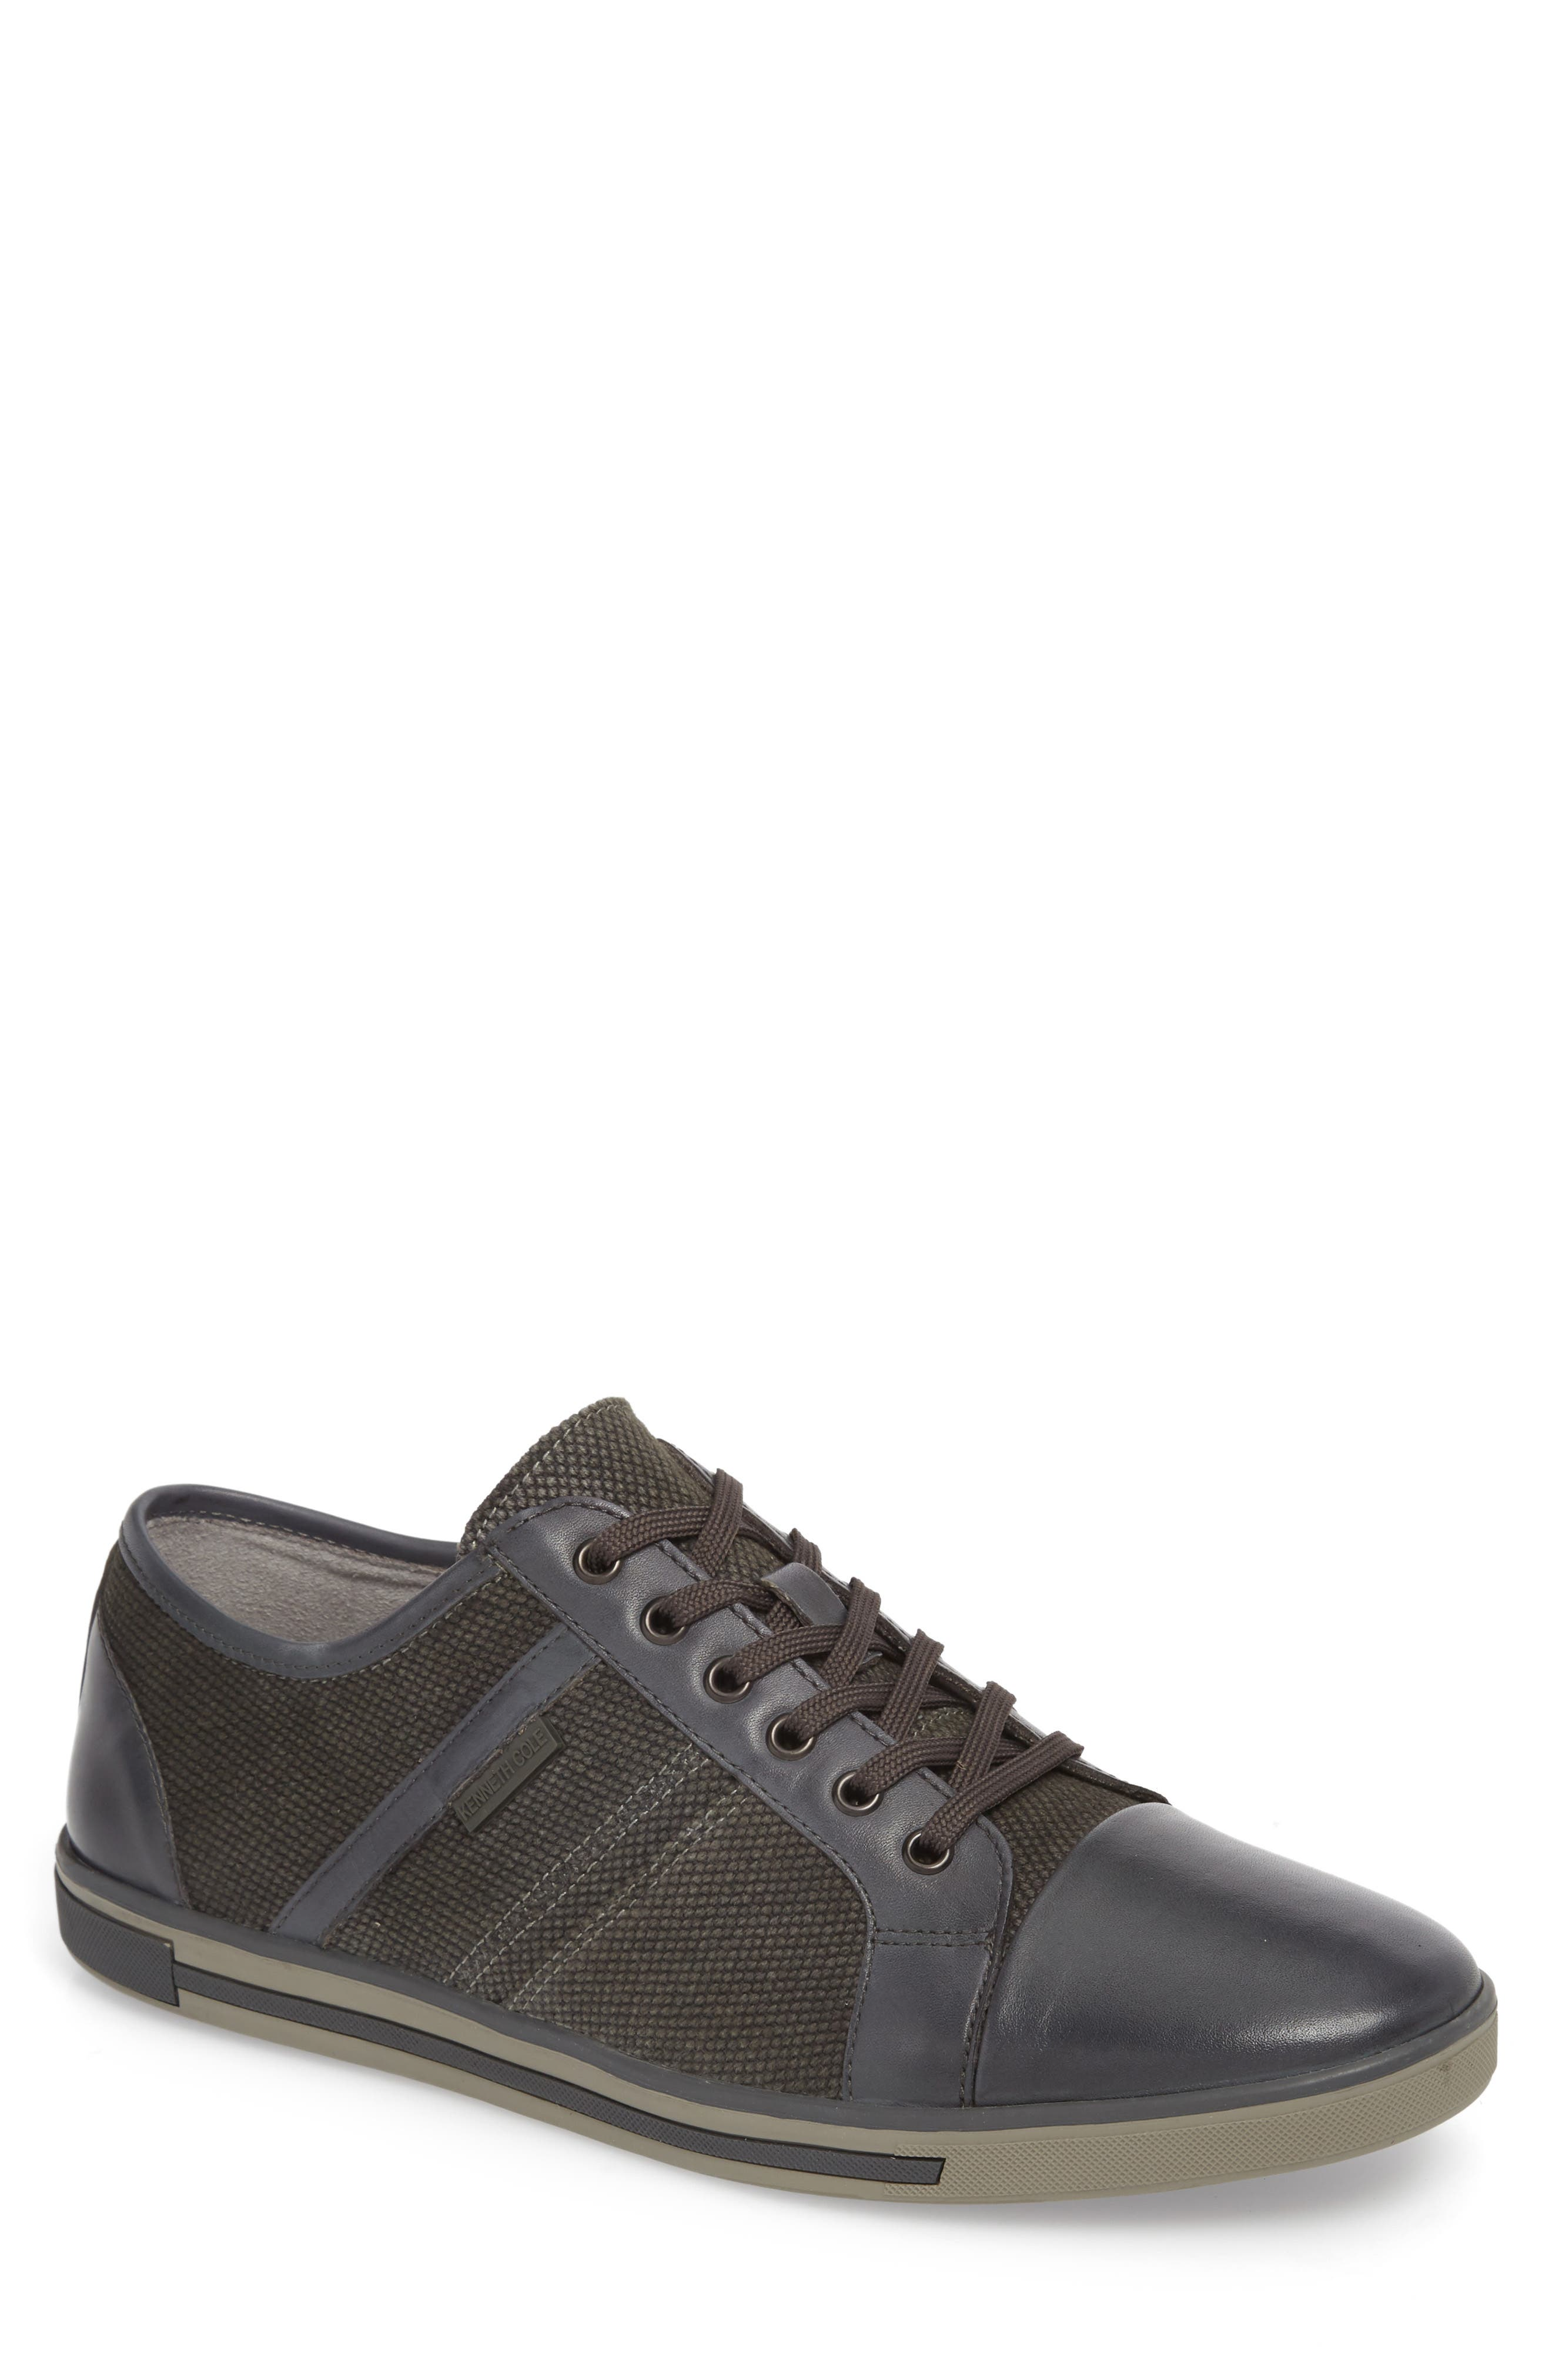 Initial Step Sneaker,                             Main thumbnail 1, color,                             Grey Leather/ Textile